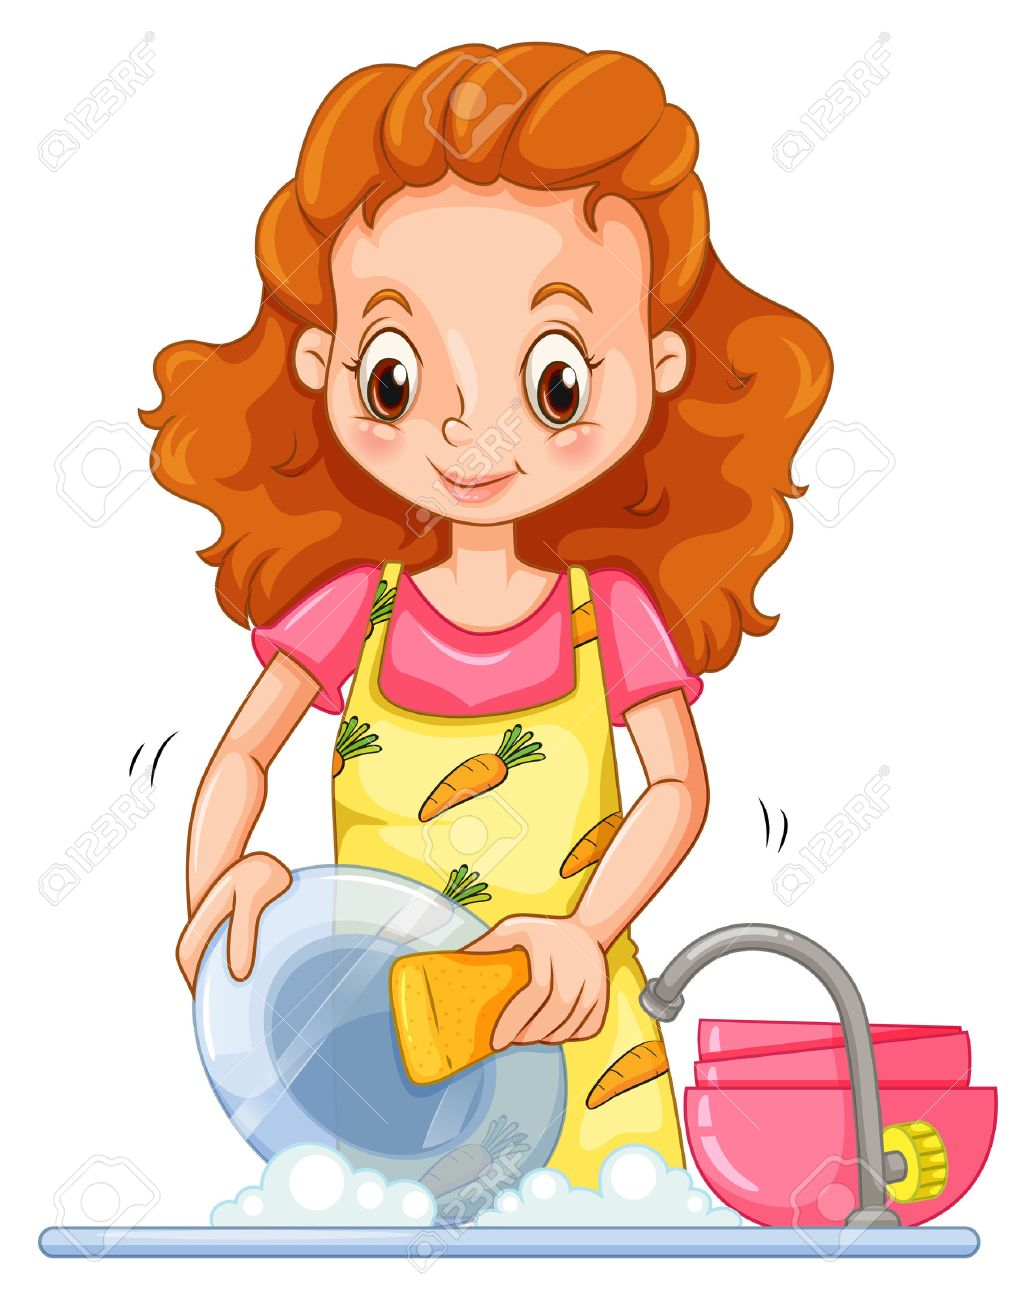 1,794 Washing Dishes Stock Vector Illustration And Royalty Free.